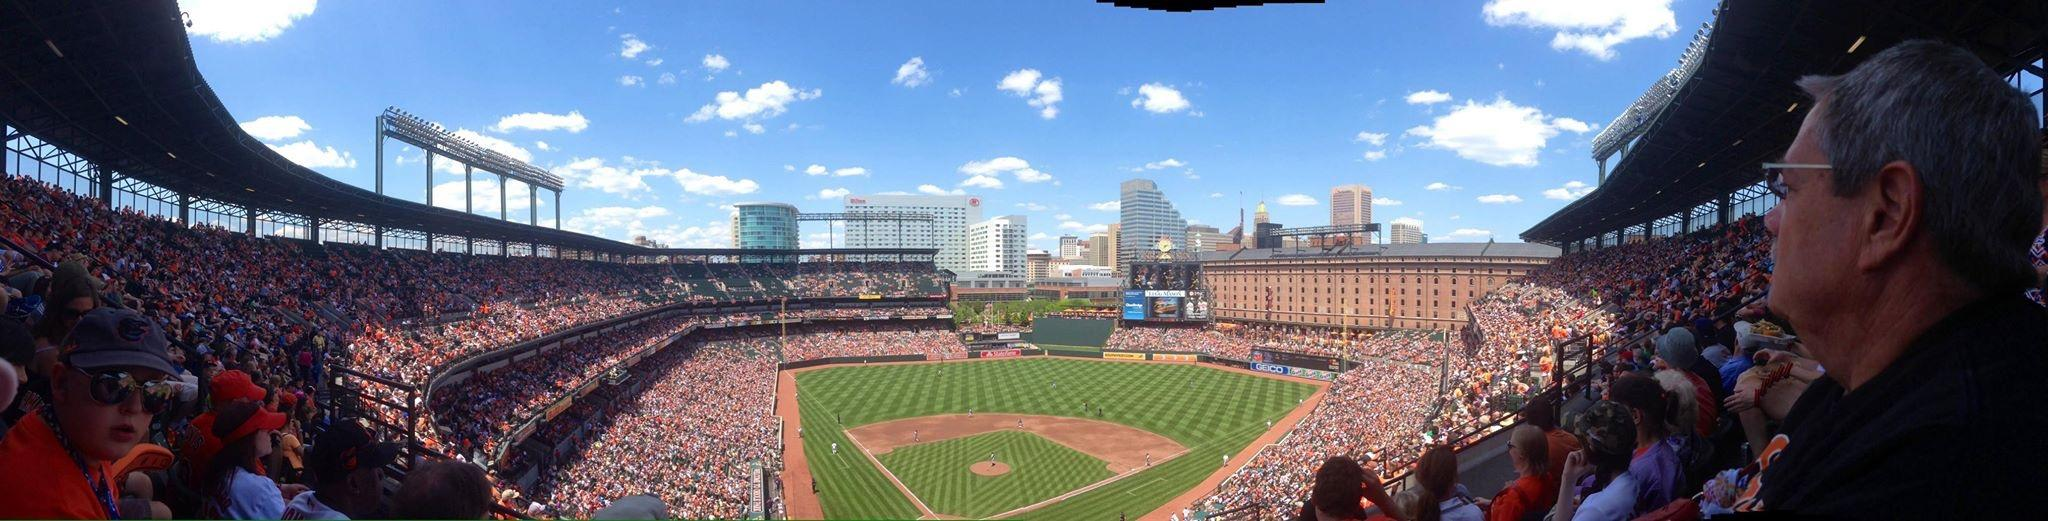 Oriole Park at Camden Yards Section 332 Row 16 Seat 9